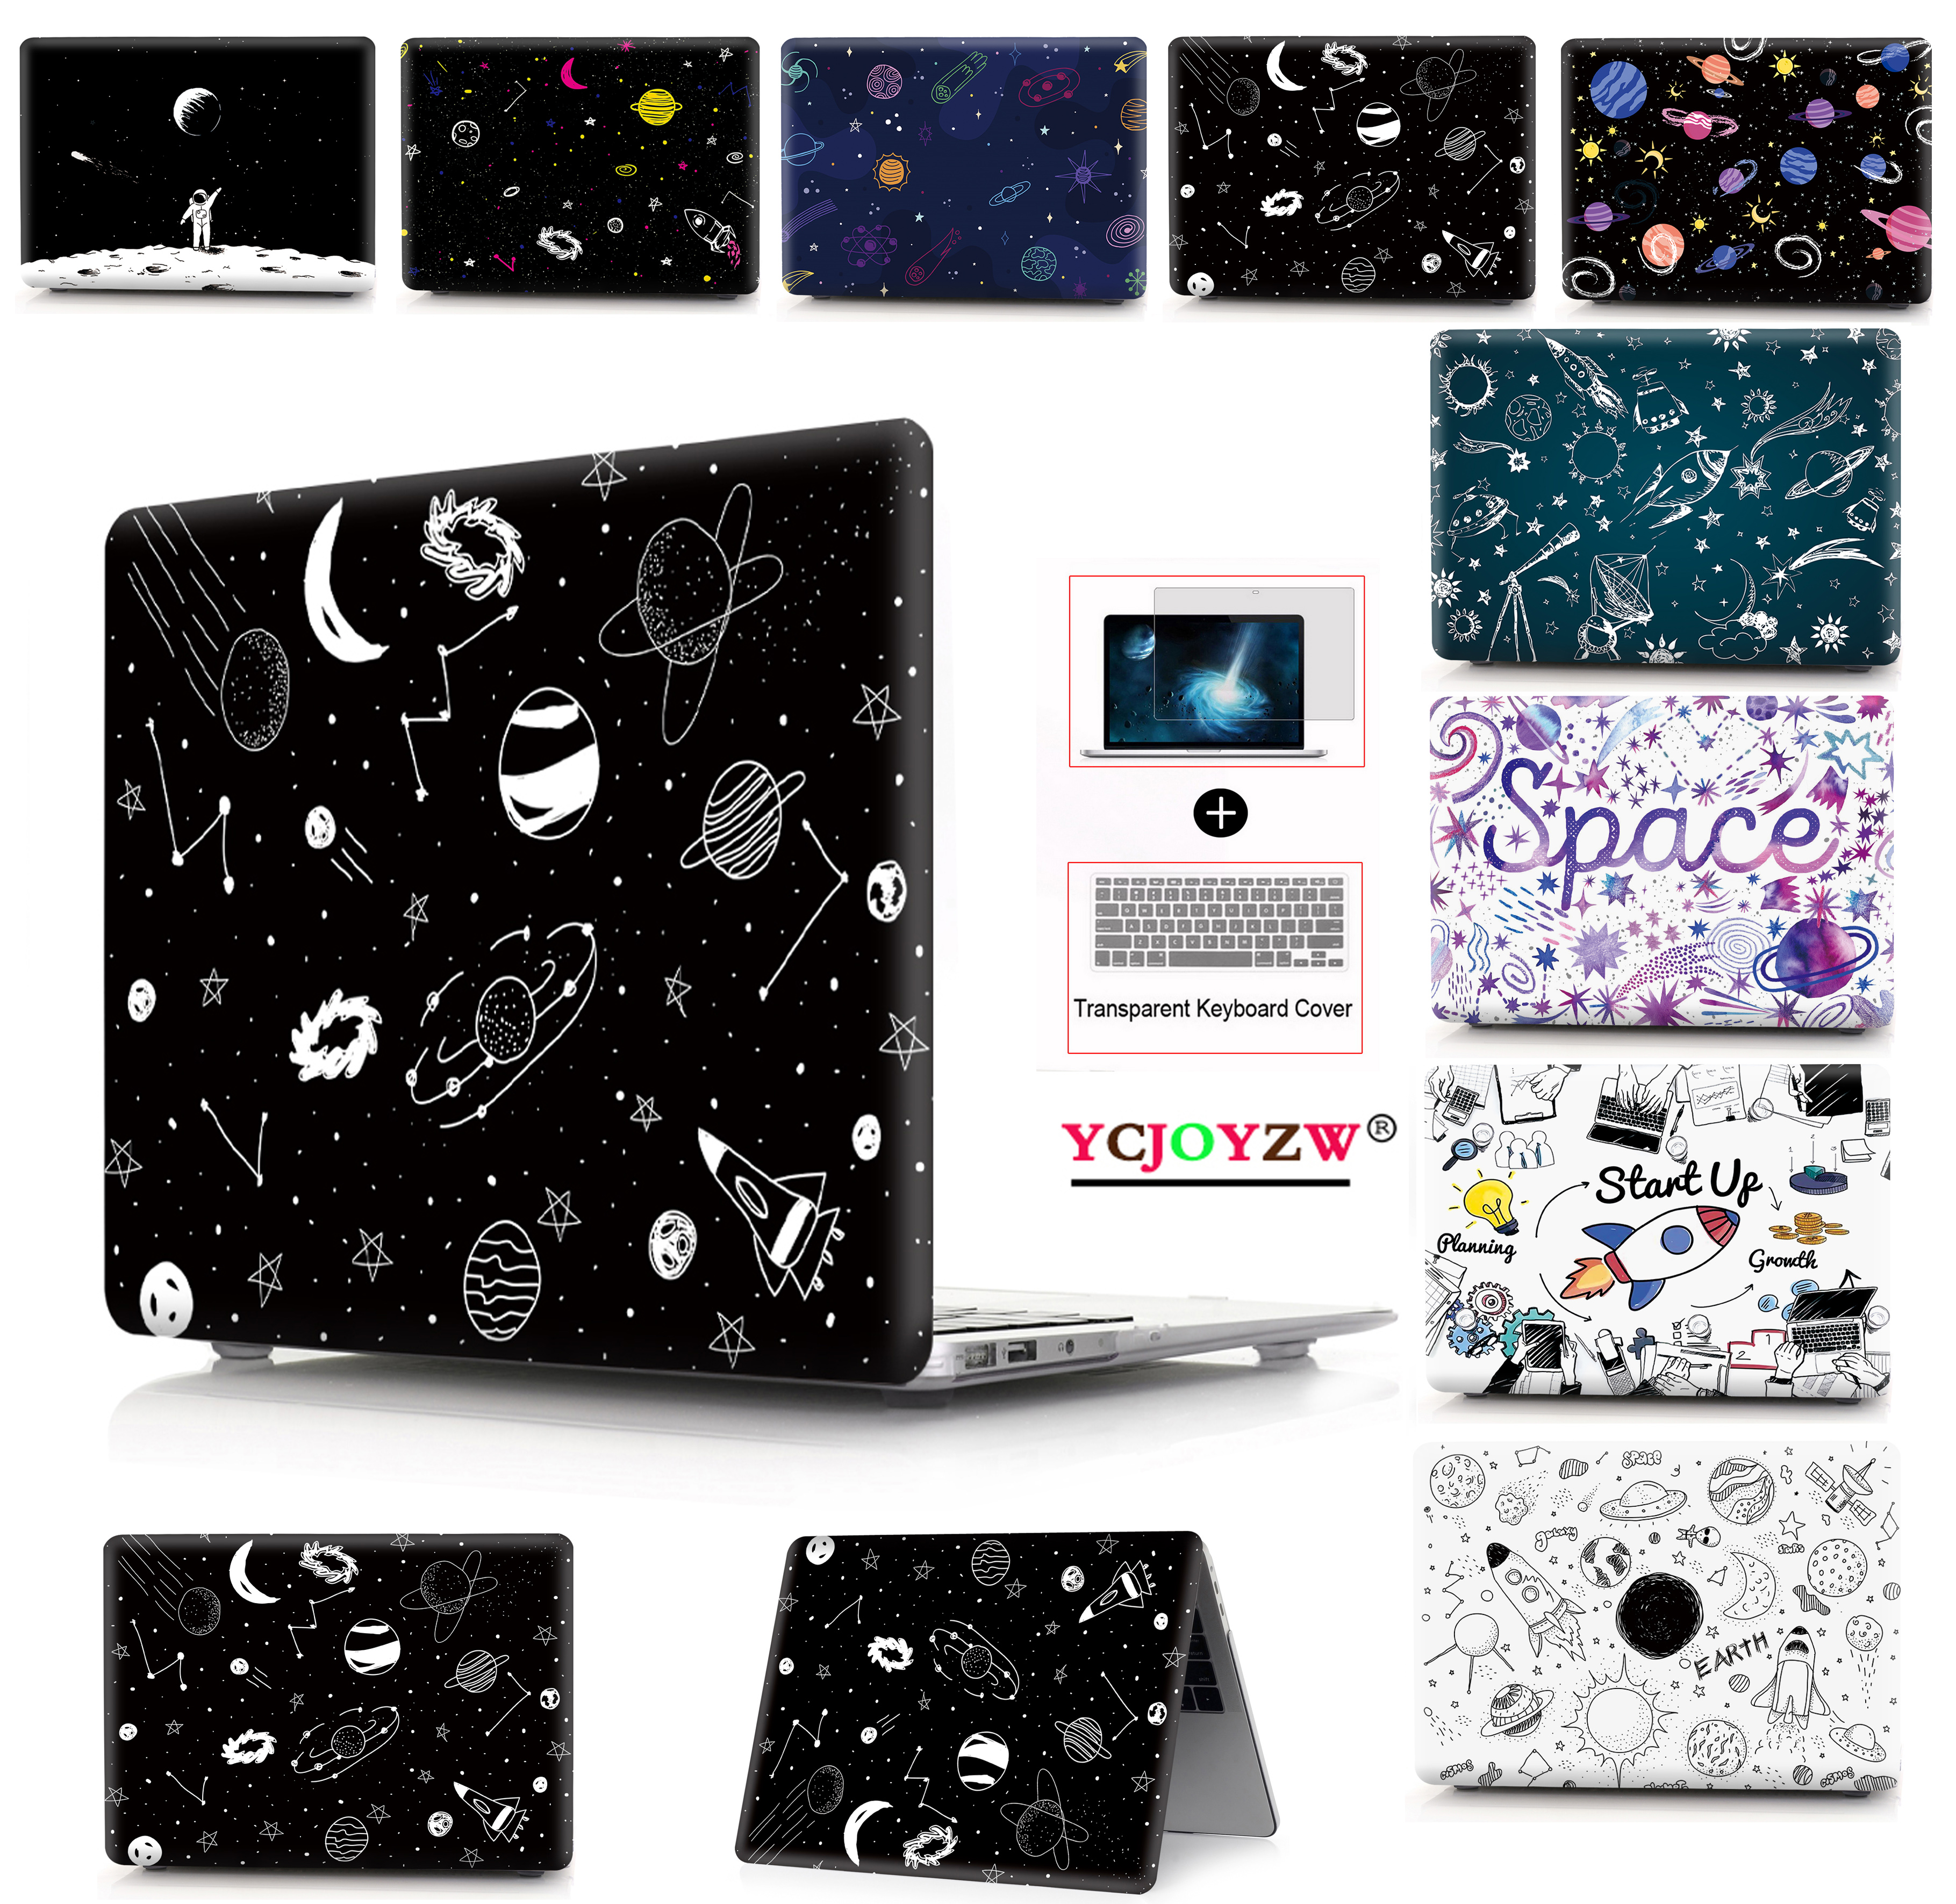 New 2019 Space Case <font><b>Cover</b></font> for <font><b>MacBook</b></font> Air 11 air 13 inch A1466 A1932 <font><b>Pro</b></font> 12 13 15 Retina A1502 A1706 <font><b>A1708</b></font> A1989 A2159Touch bar image